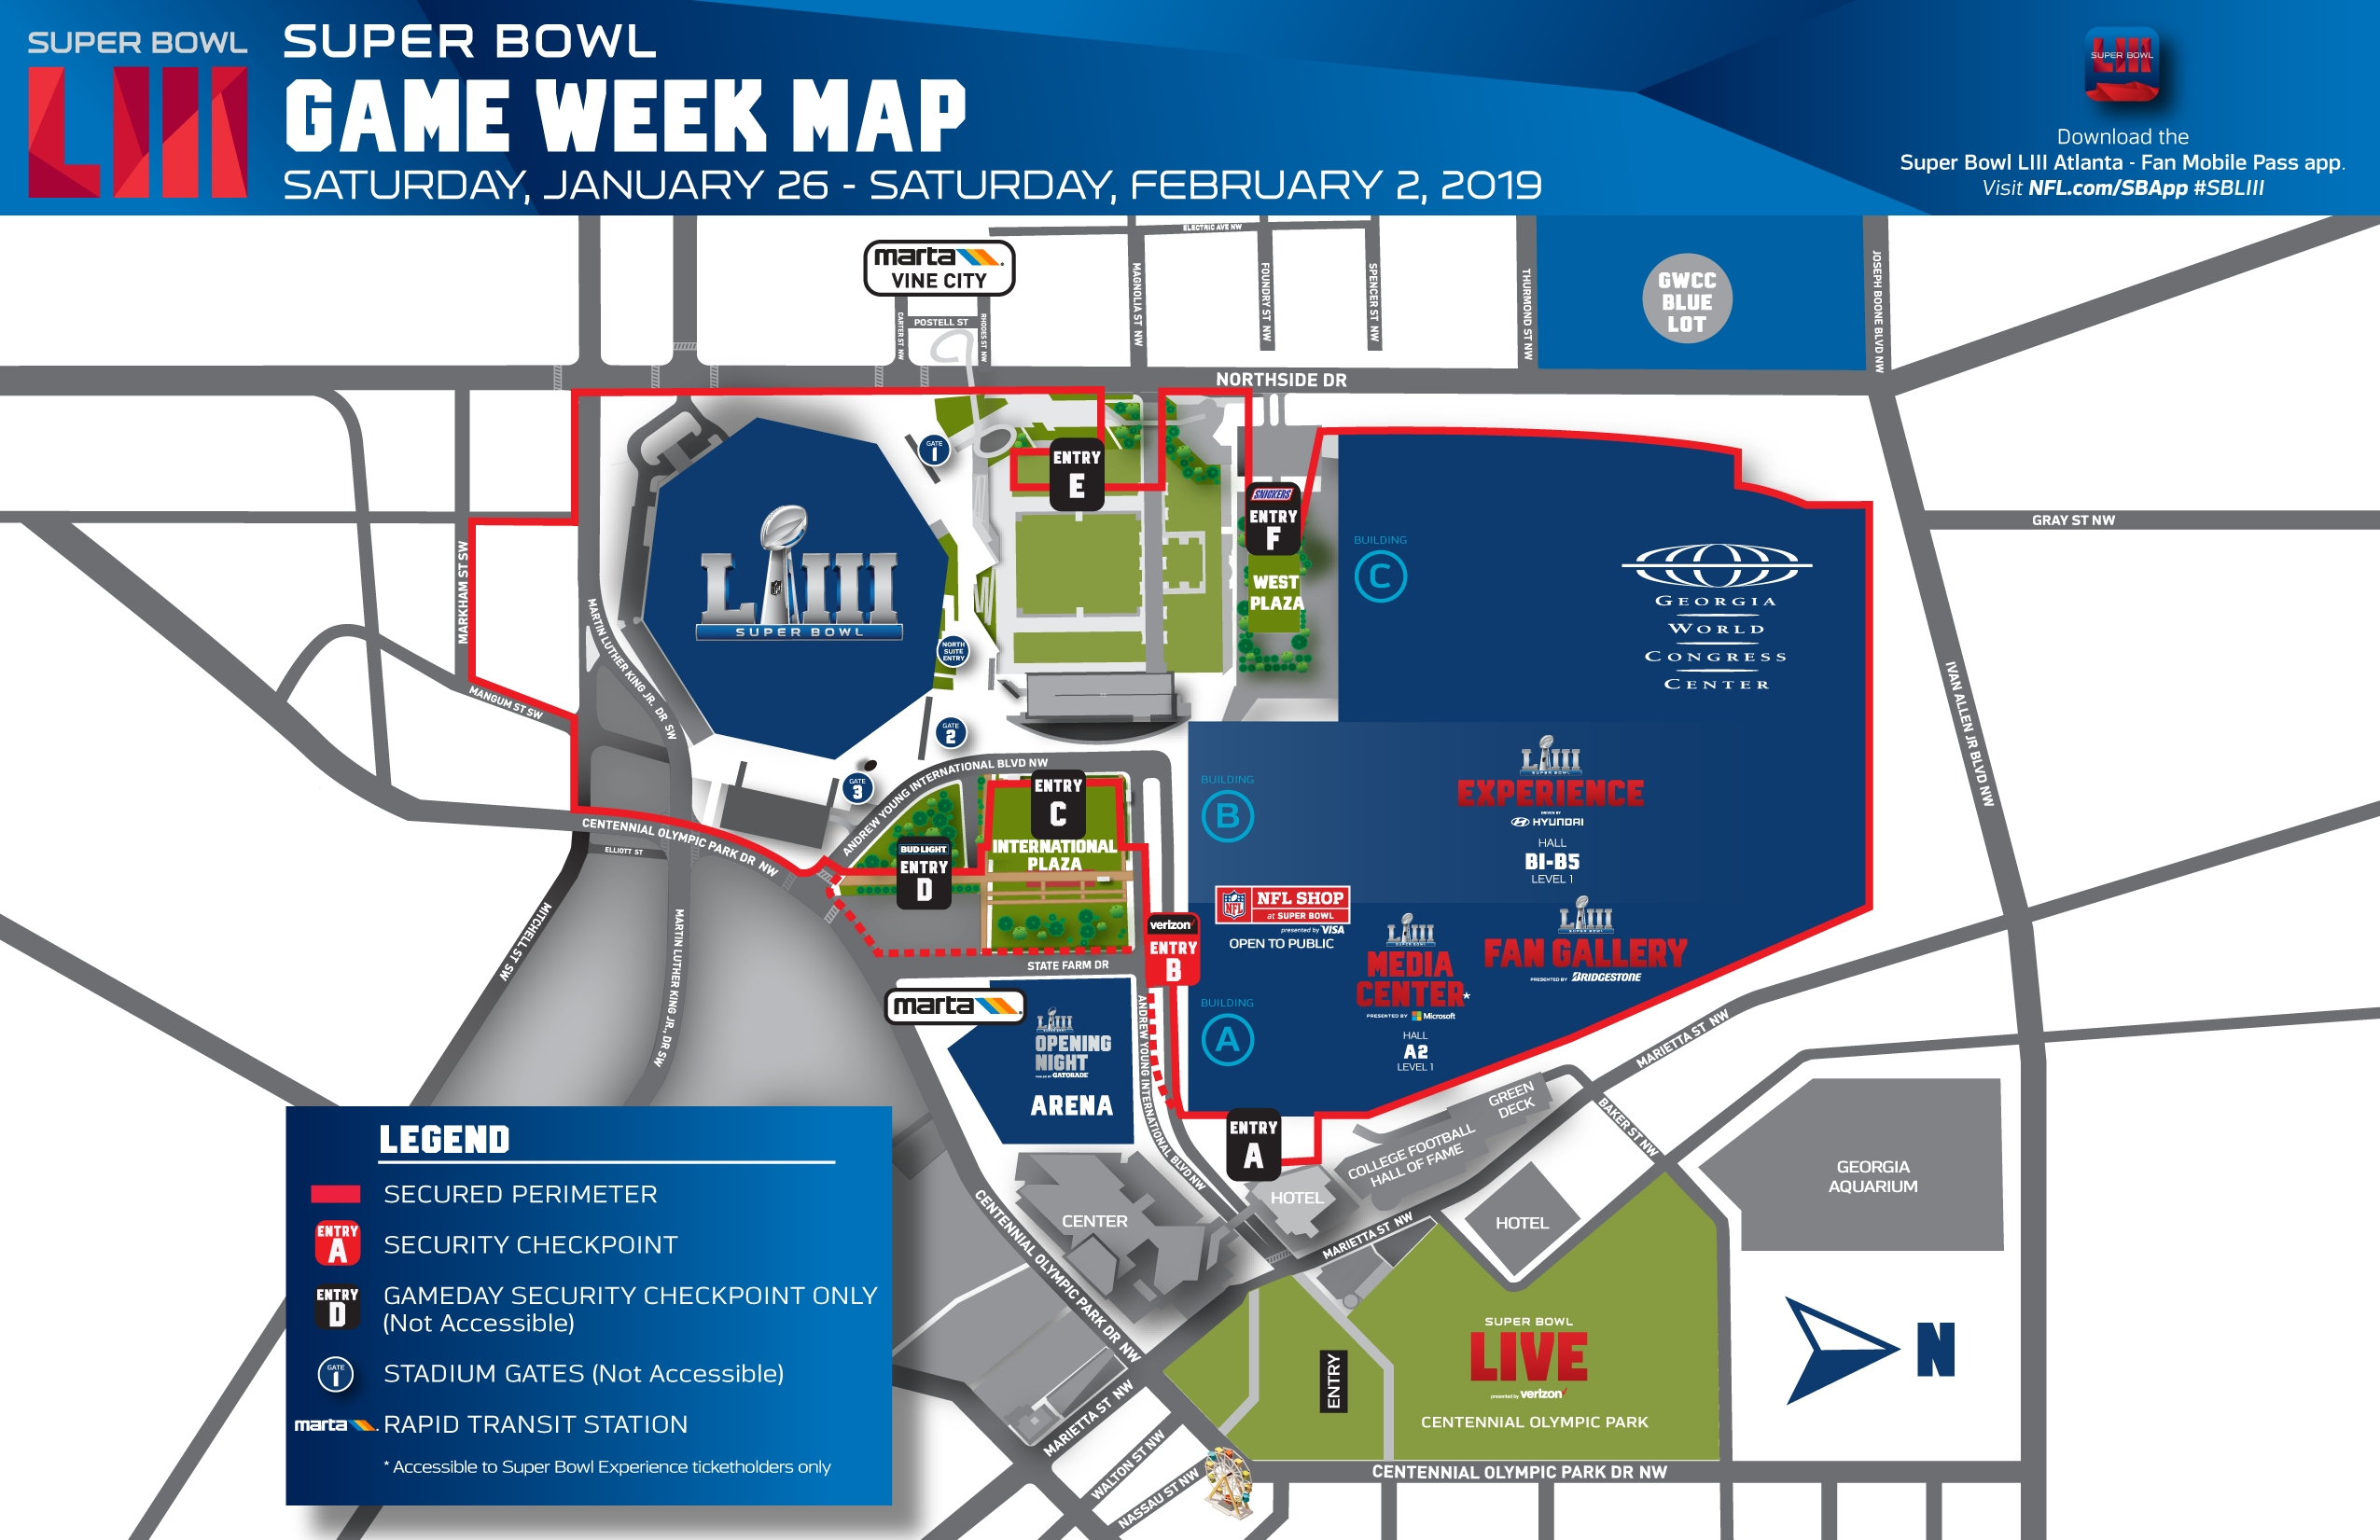 Super Bowl Experience | Nfl | Nfl with Super Bowl 2019 Support Map